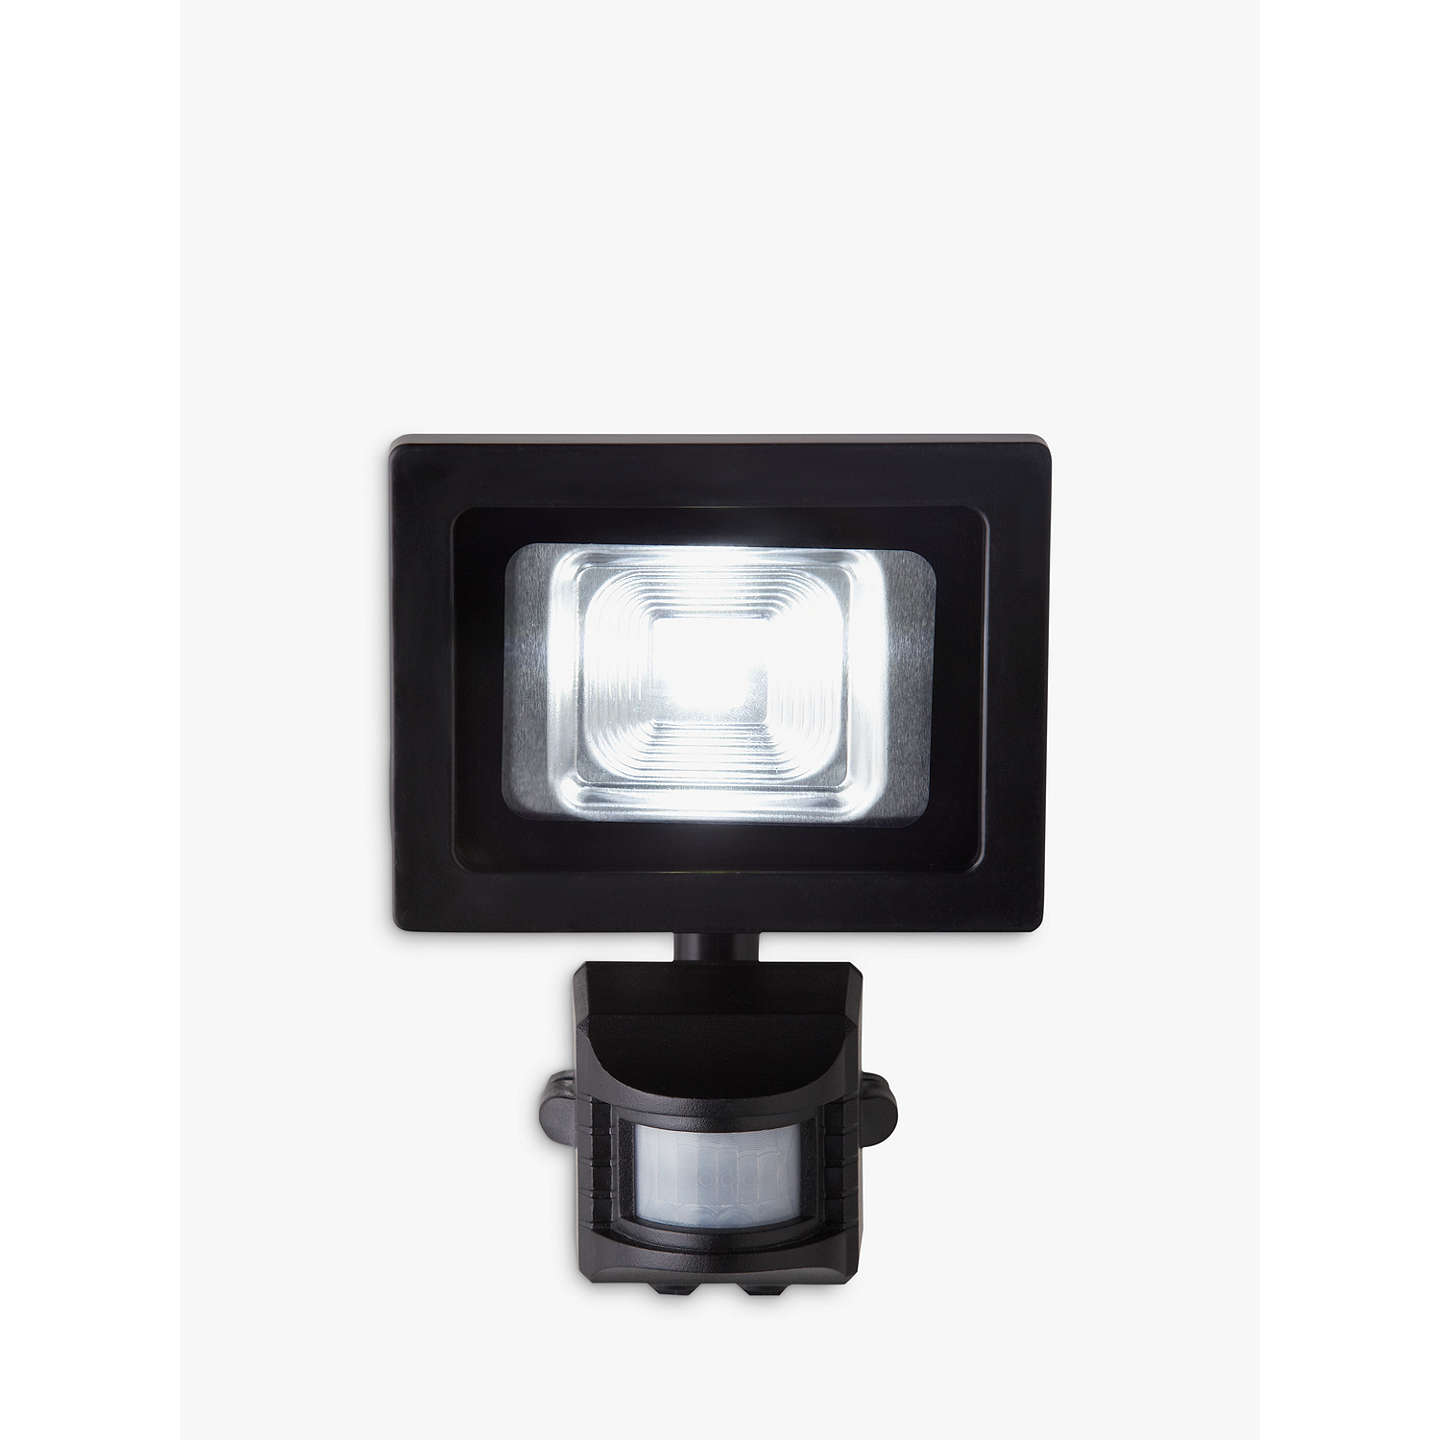 Outdoor Security Lights Pir: John Lewis Outdoor Lighting